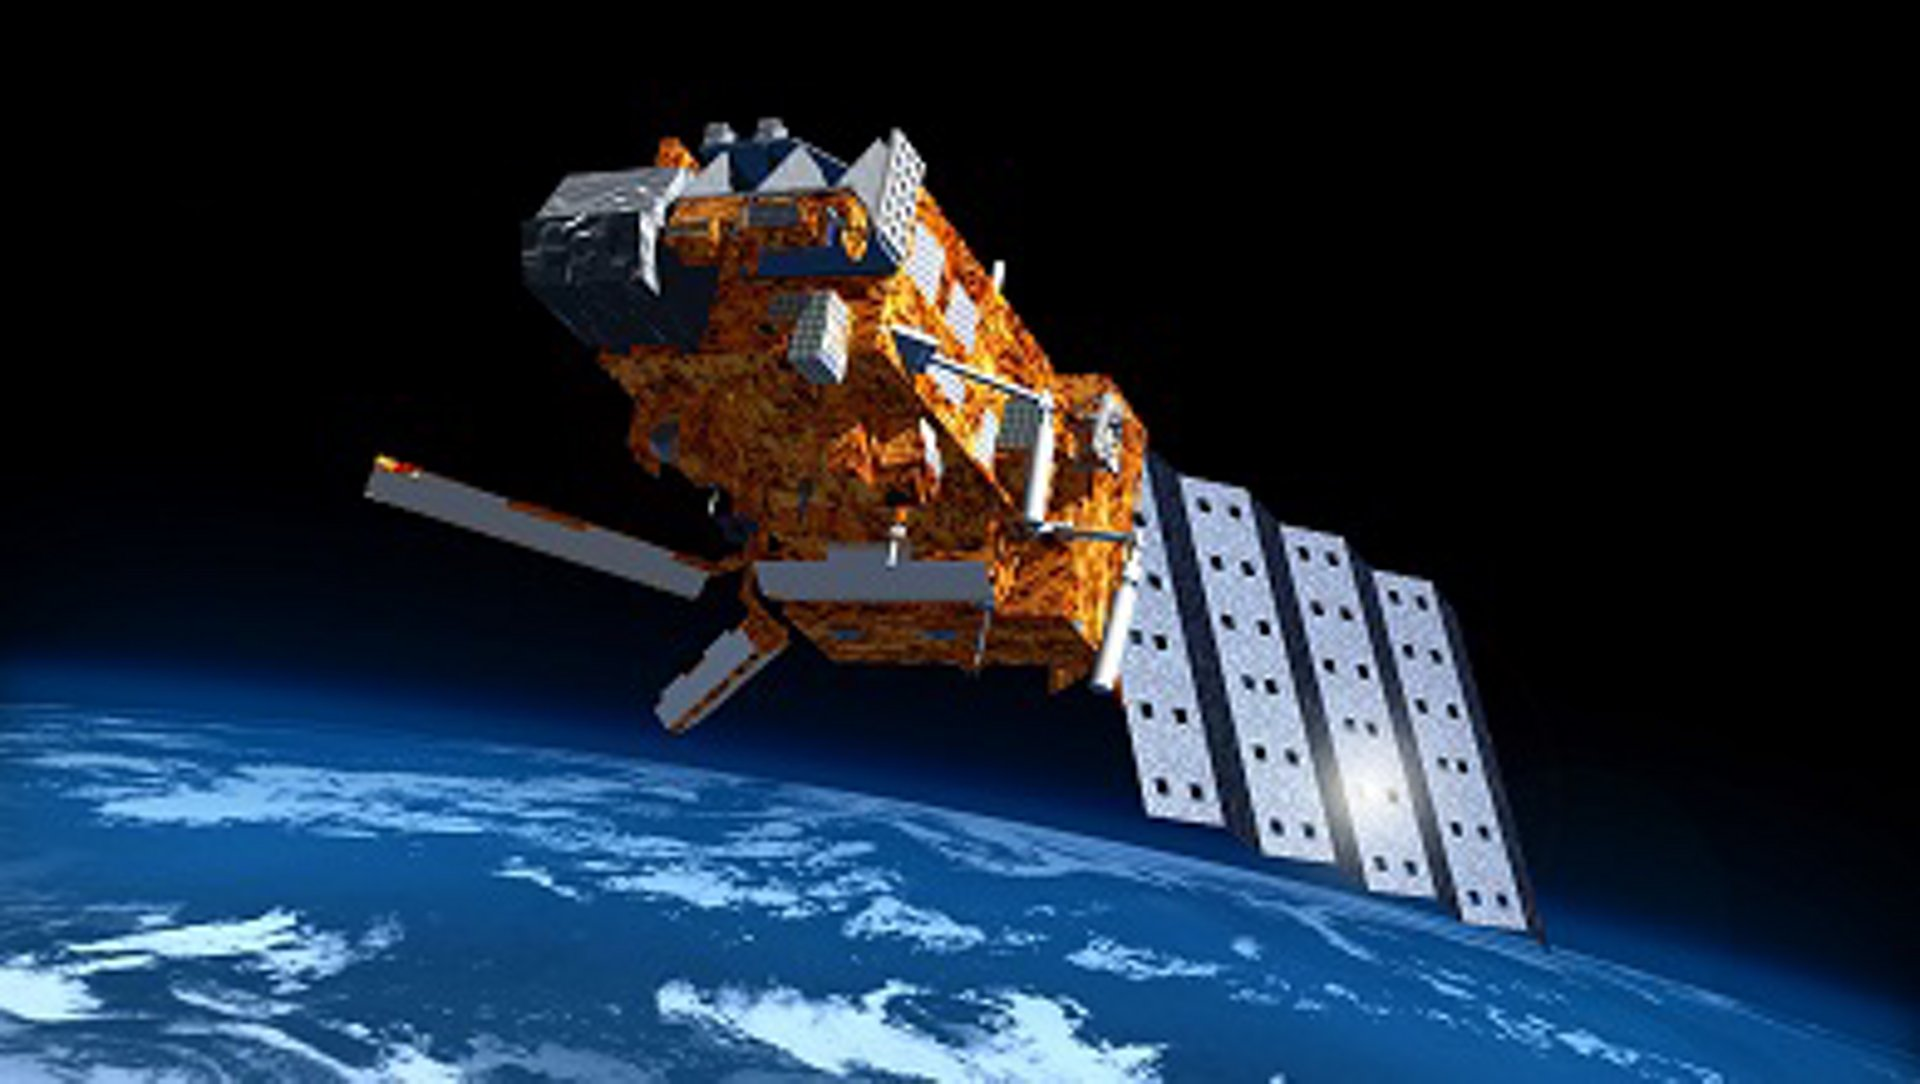 A representation of the Airbus-produced Metop-A meteorological satellite, which was launched in 2006.